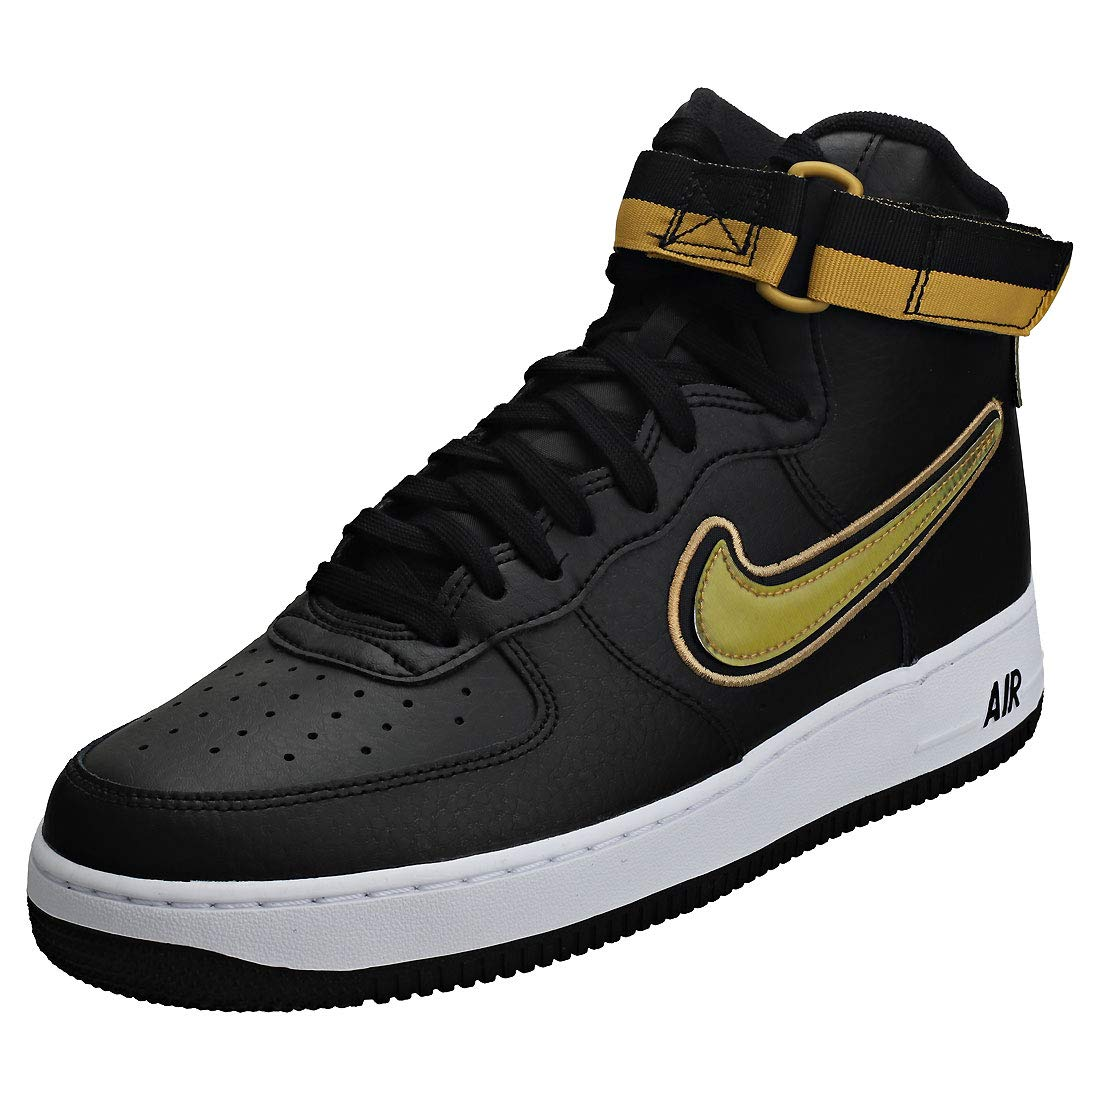 SportBlackmetallic 1 M High Gold Us Force White8 Nike 07 Lv8 Air Men's OkZTlPwXui